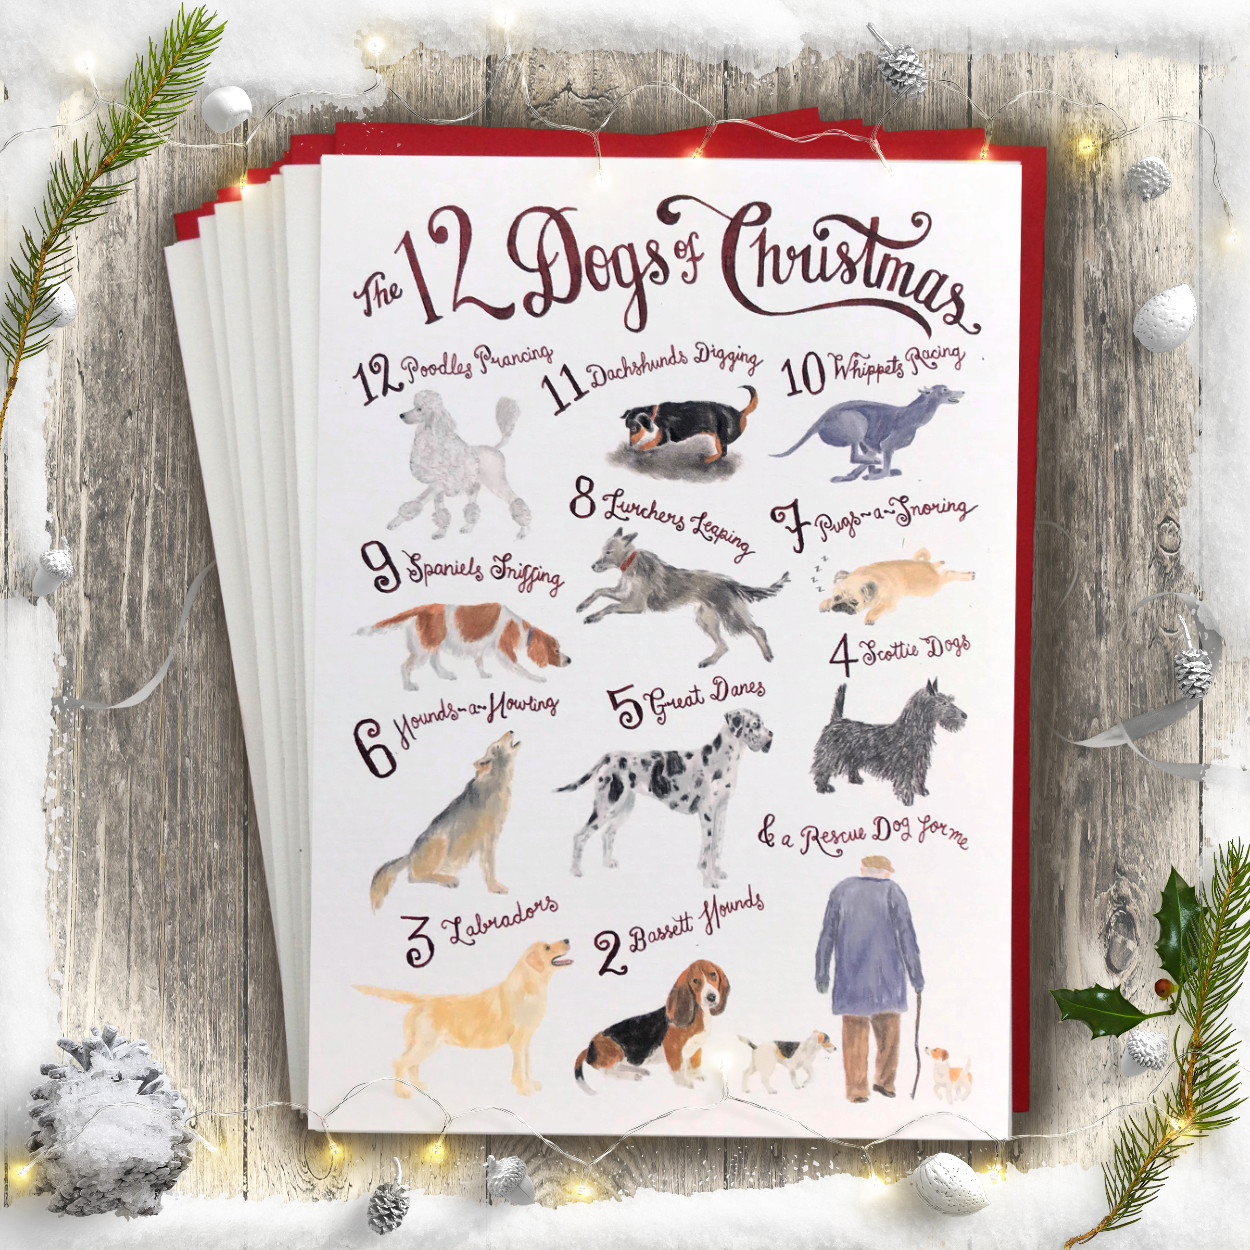 12 Dogs of Christmas Card for dog lovers by The Enlightened Hound